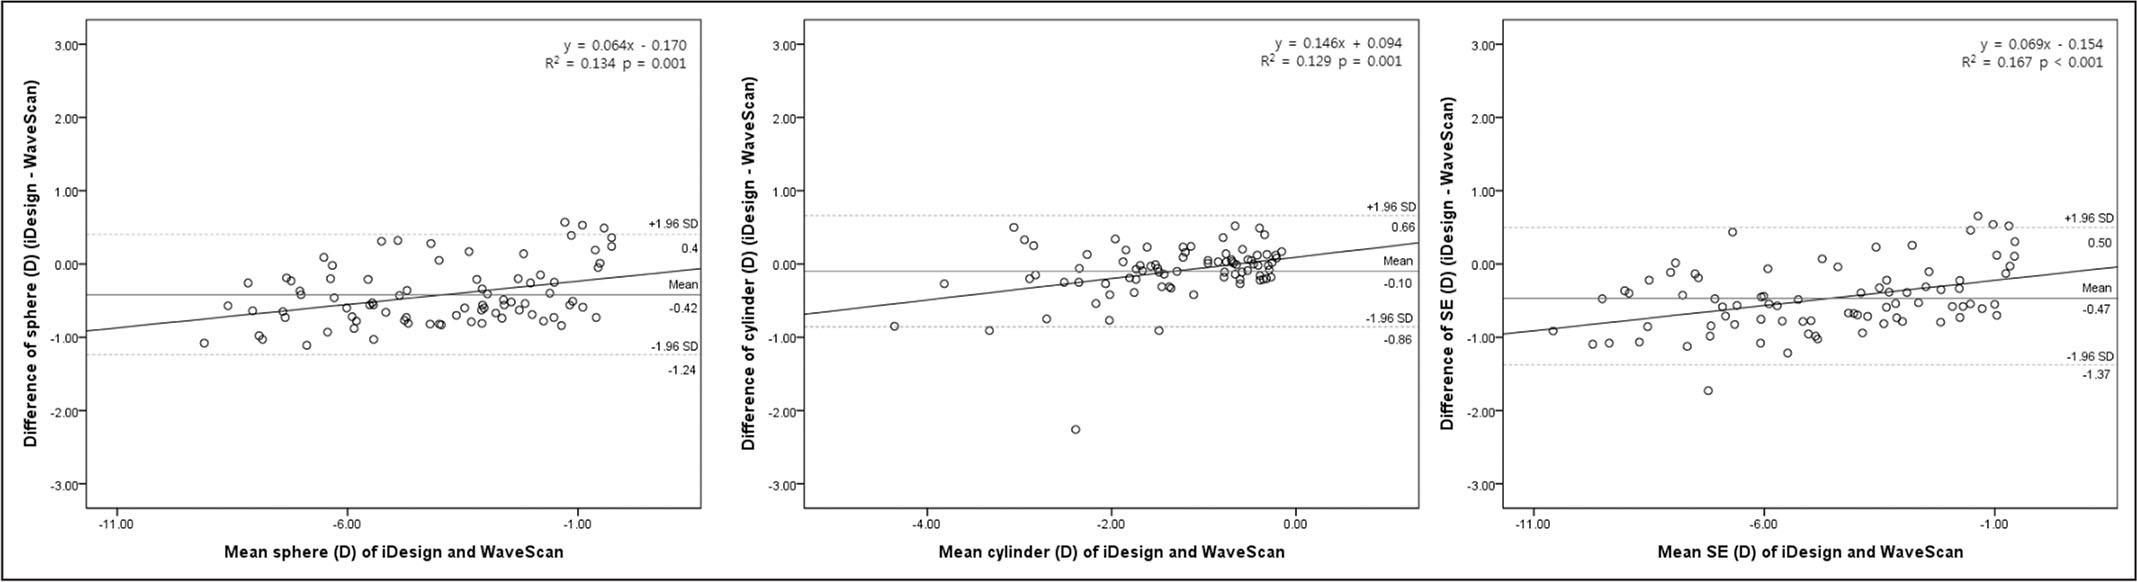 A scatter plot showing the differences between two measurements of refractive errors against their average was used, as described by Bland and Altman.14 The coefficient of determination (r2) and probability of linear correlation (P value) are shown. The iDesign and WaveScan are manufactured by Abbott Medical Optics, Inc., Santa Ana, CA. D = diopters; SE = spherical equivalent